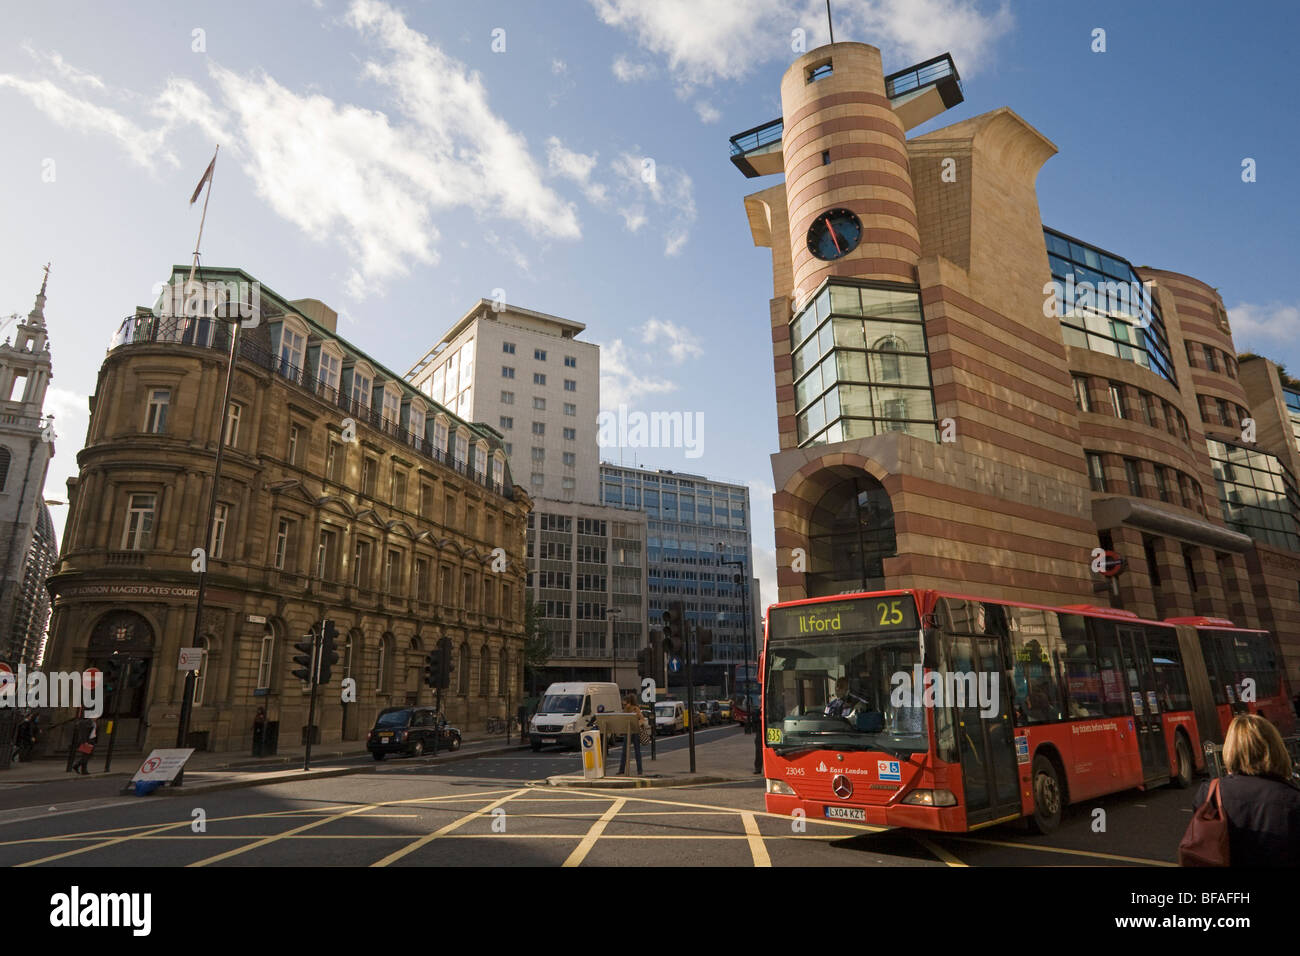 No. 1 Poultry City of London GB UK - Stock Image